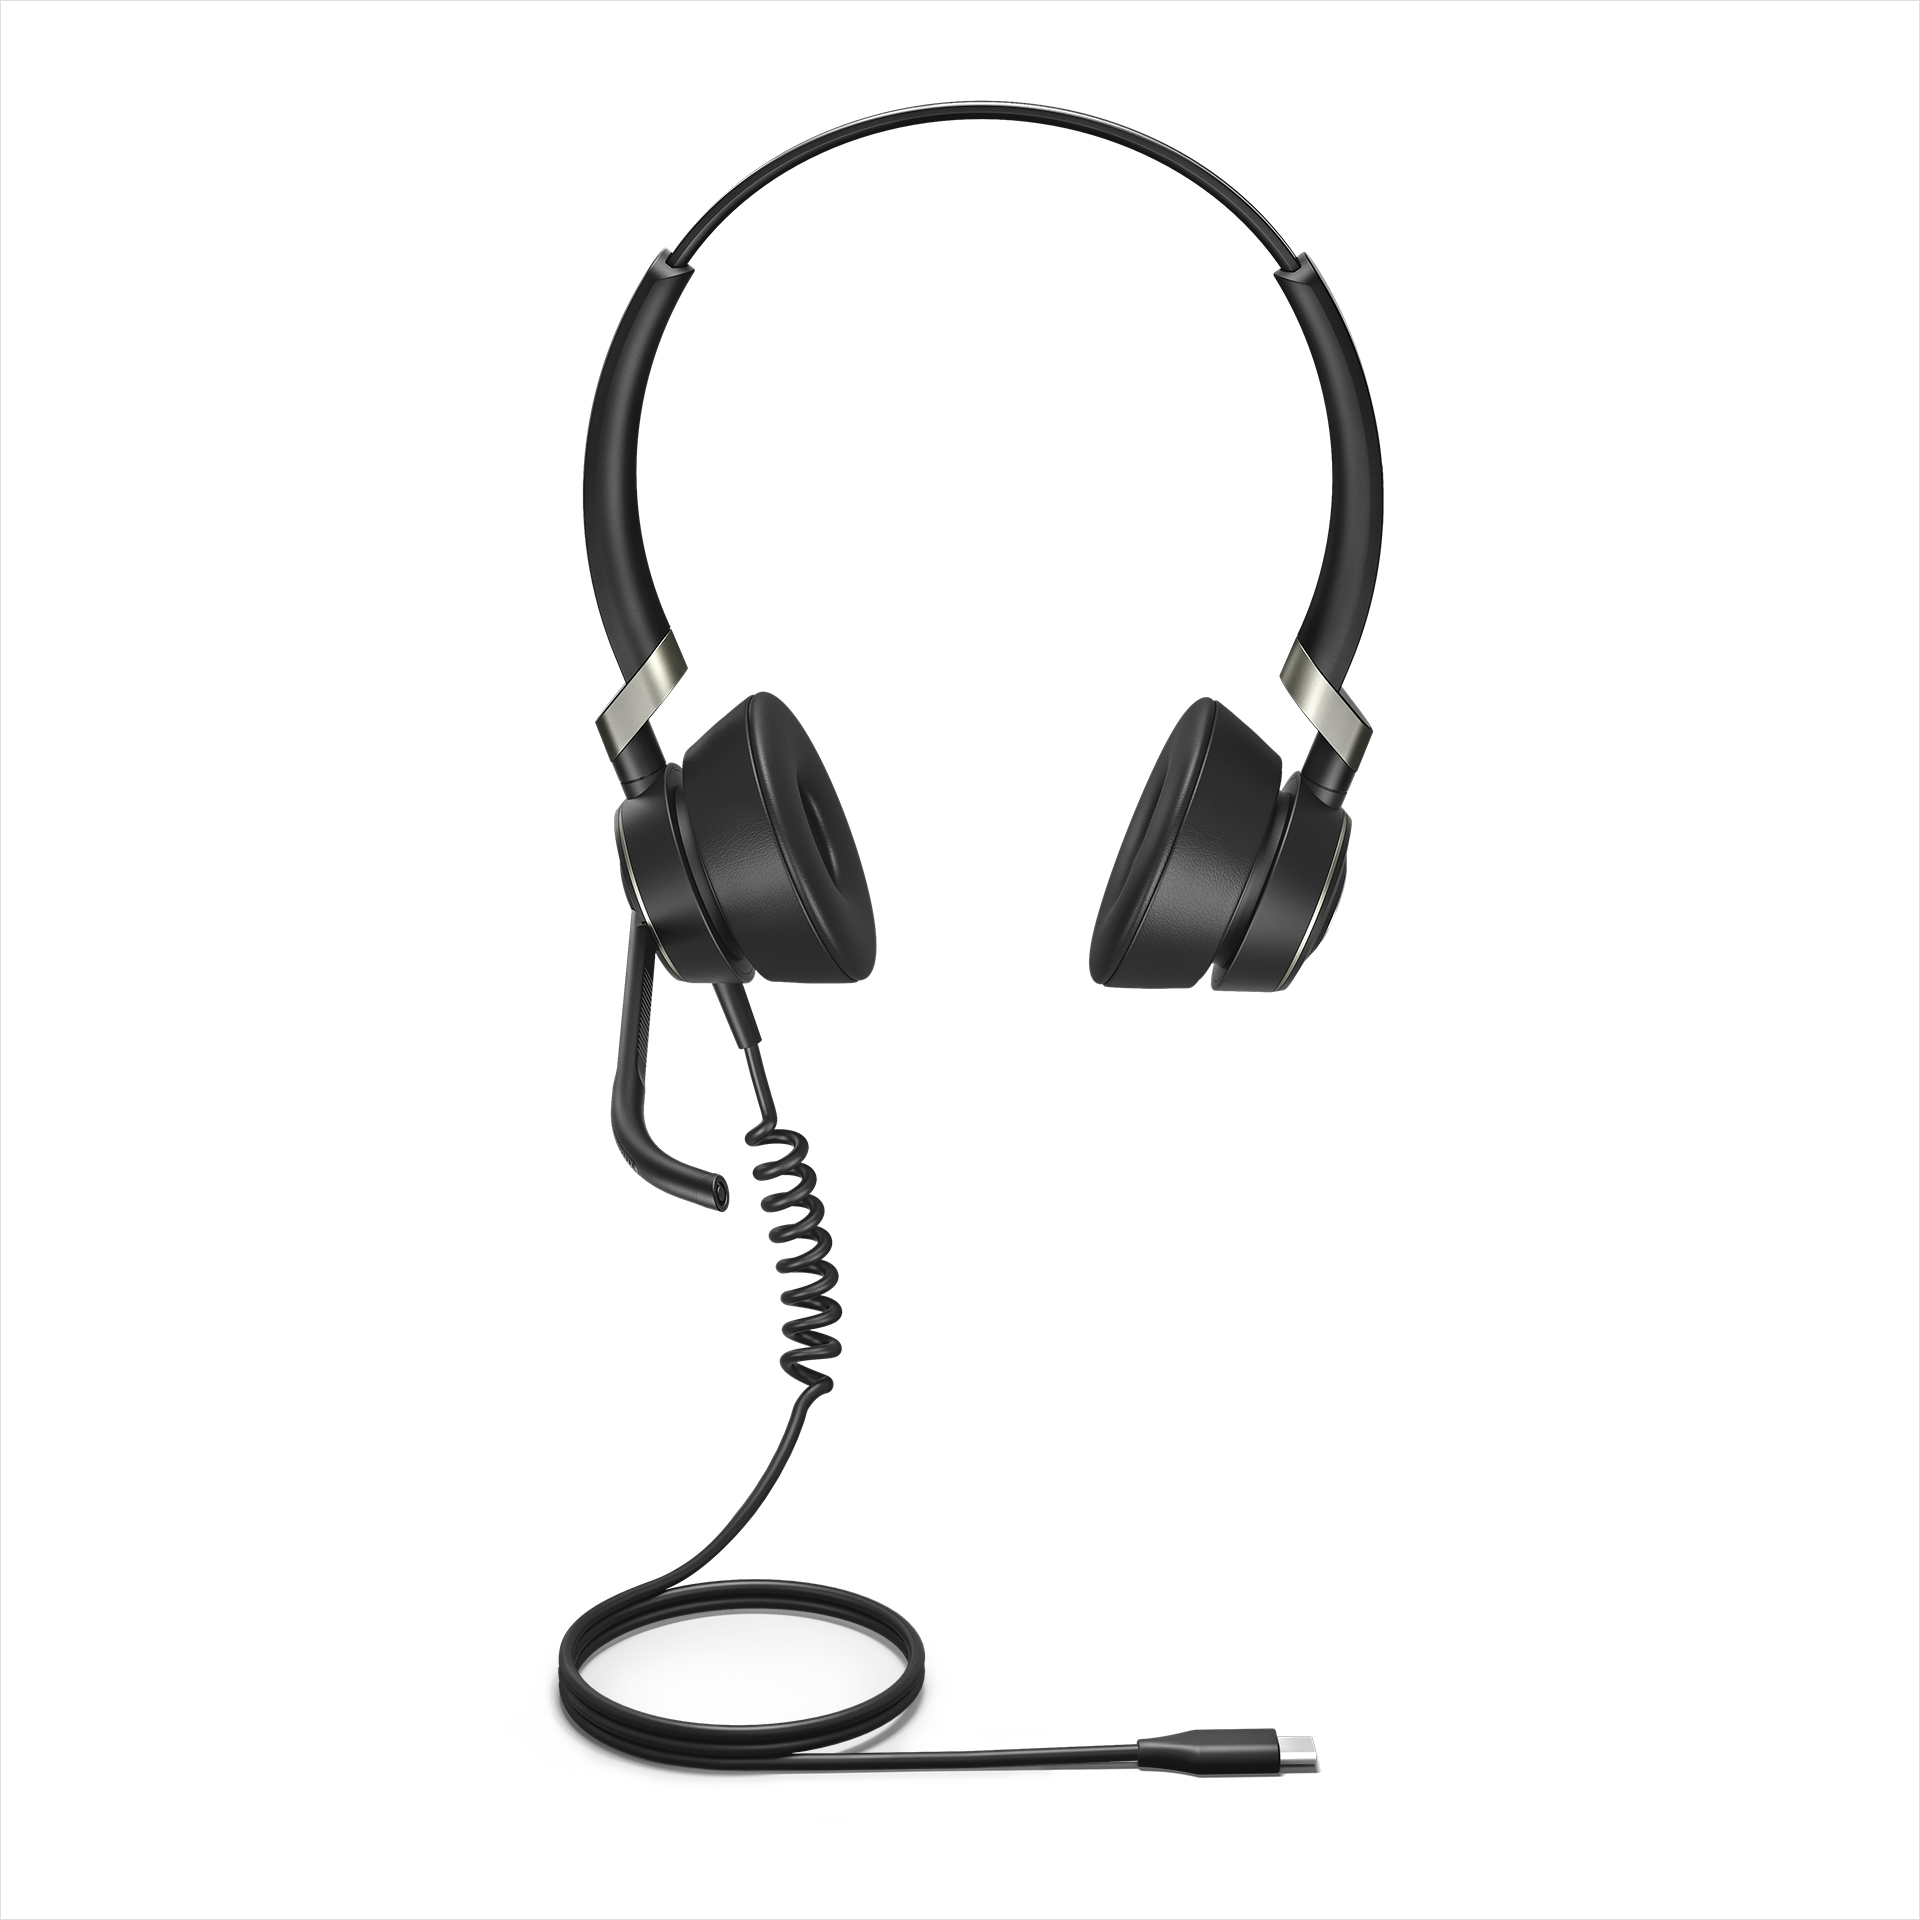 Jabra Engage 50 Stereo Headset